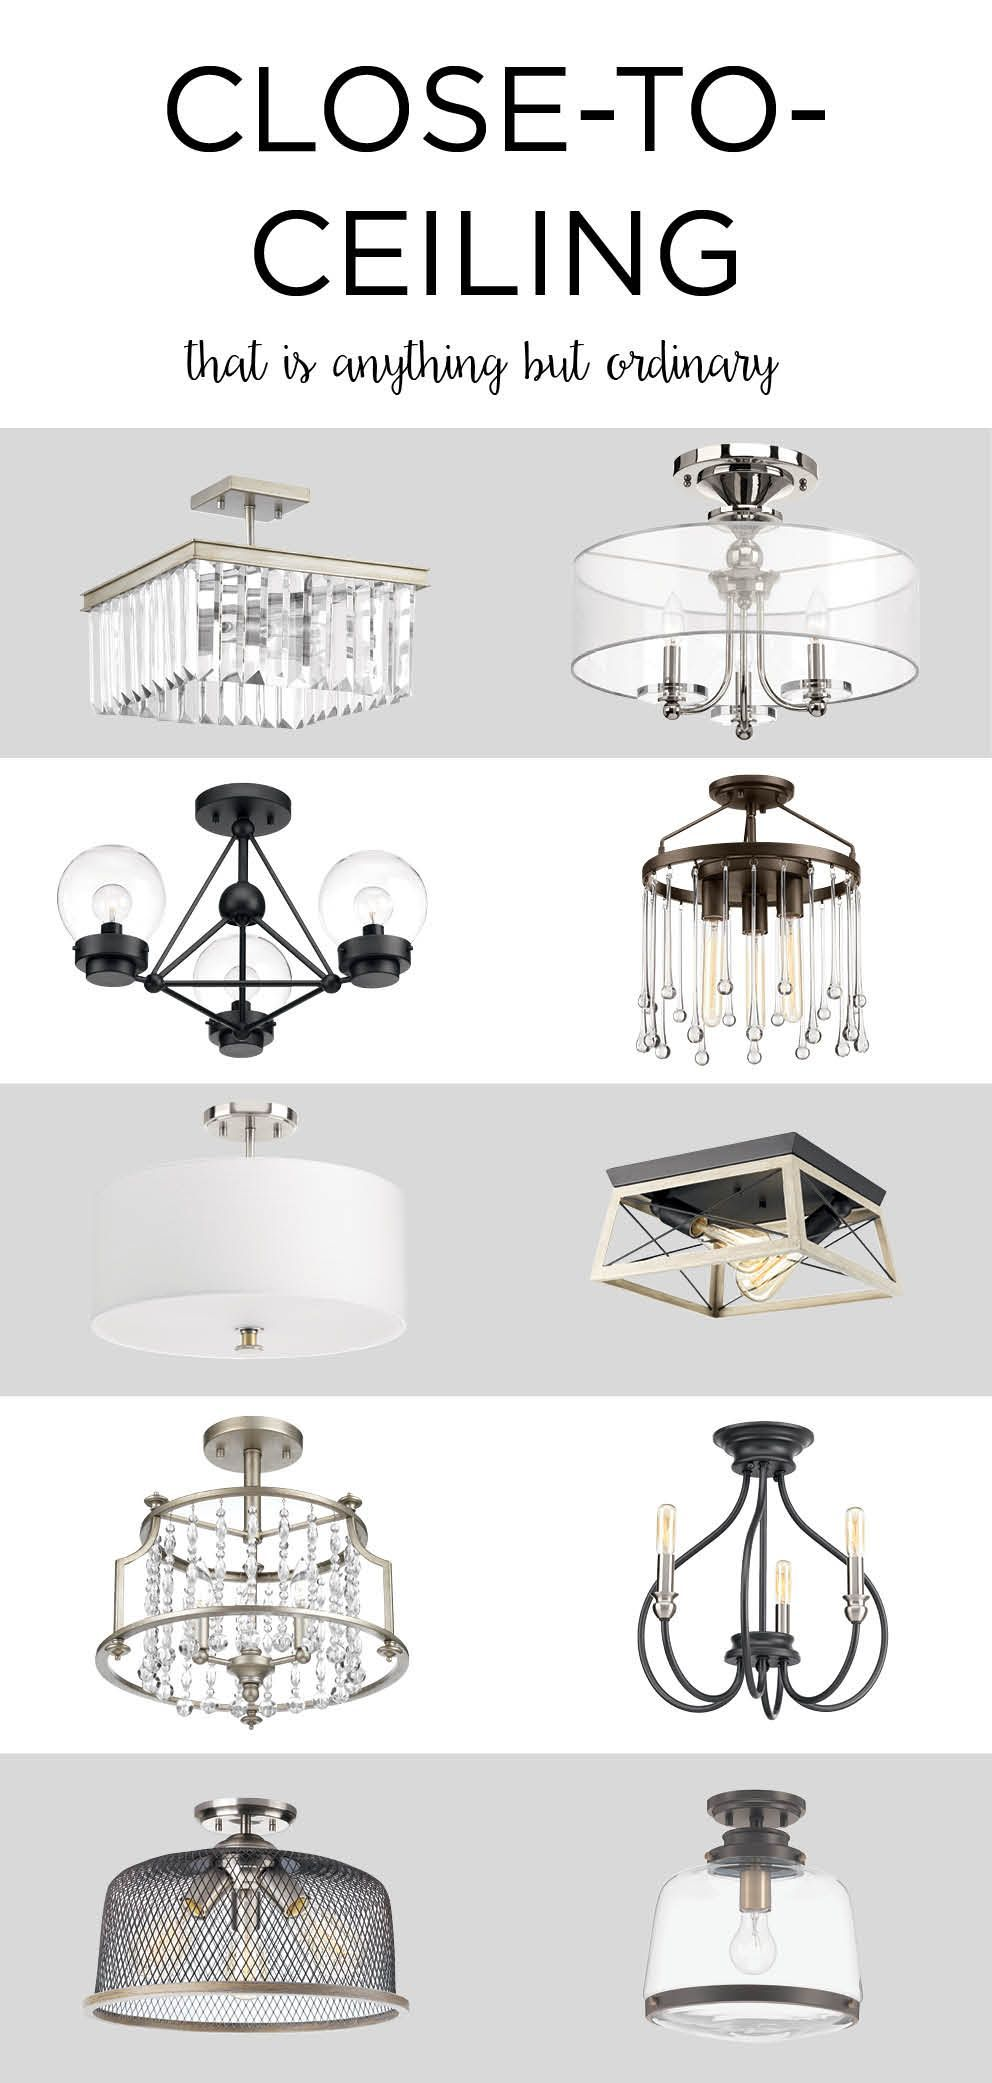 Set Your Décor Mood With The Right Light! Lighting has the